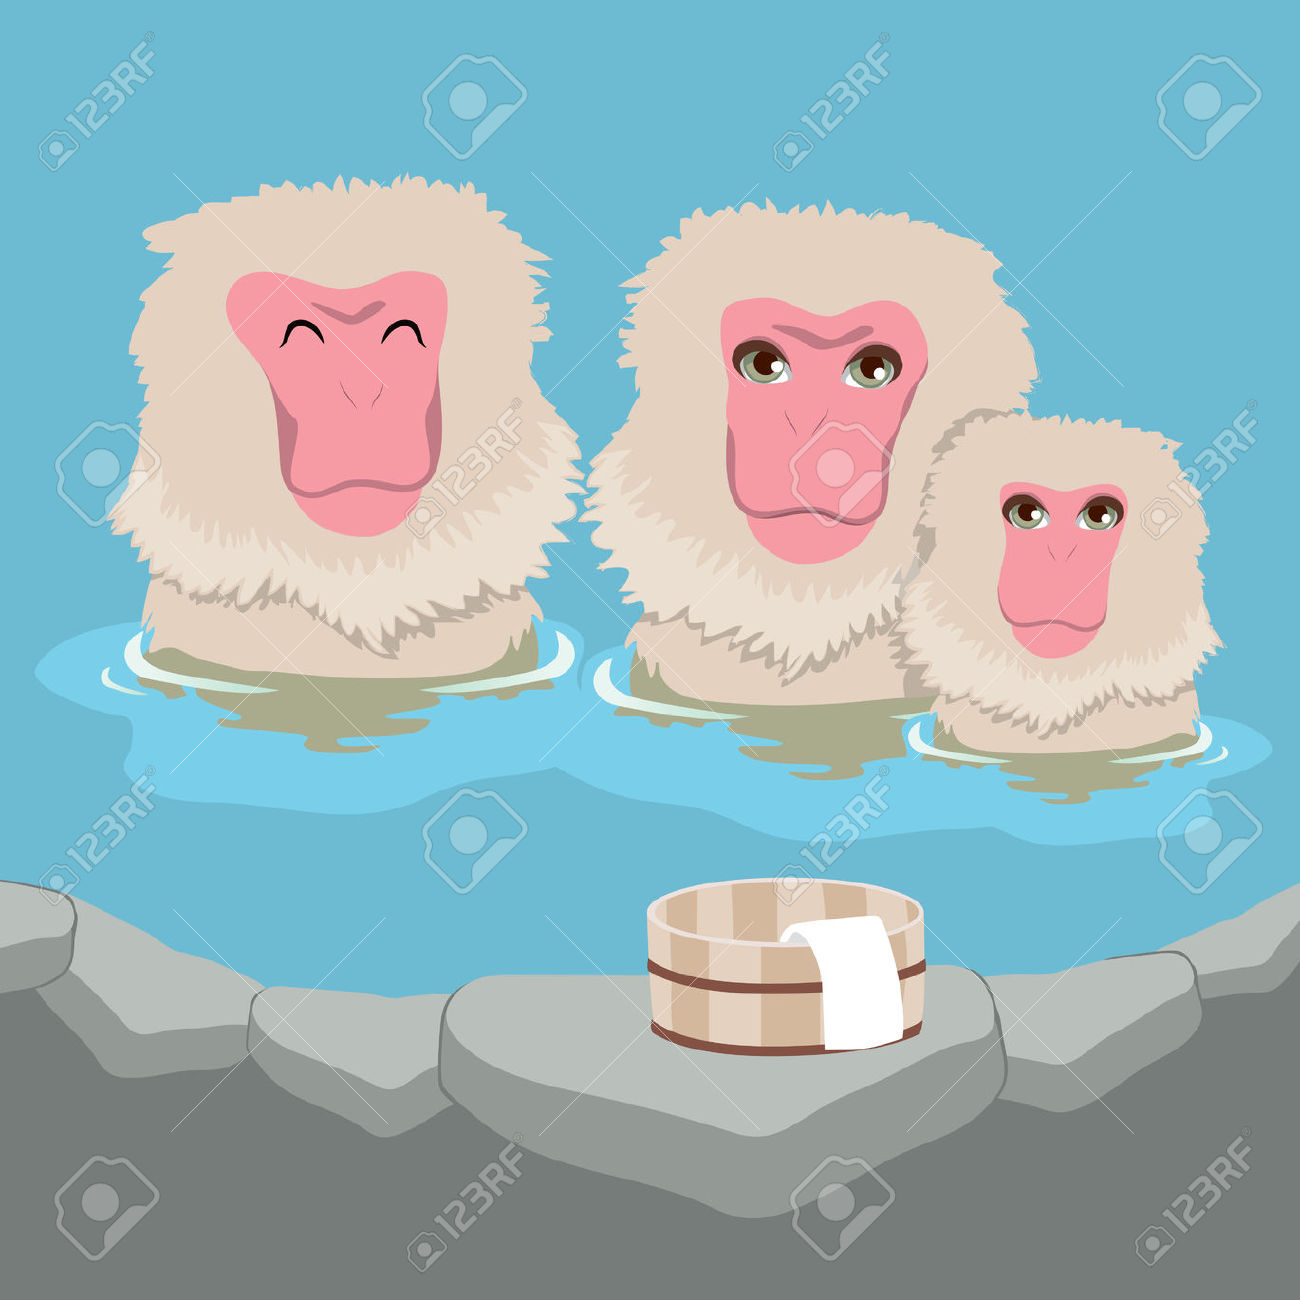 Japanese Macaque clipart #13, Download drawings